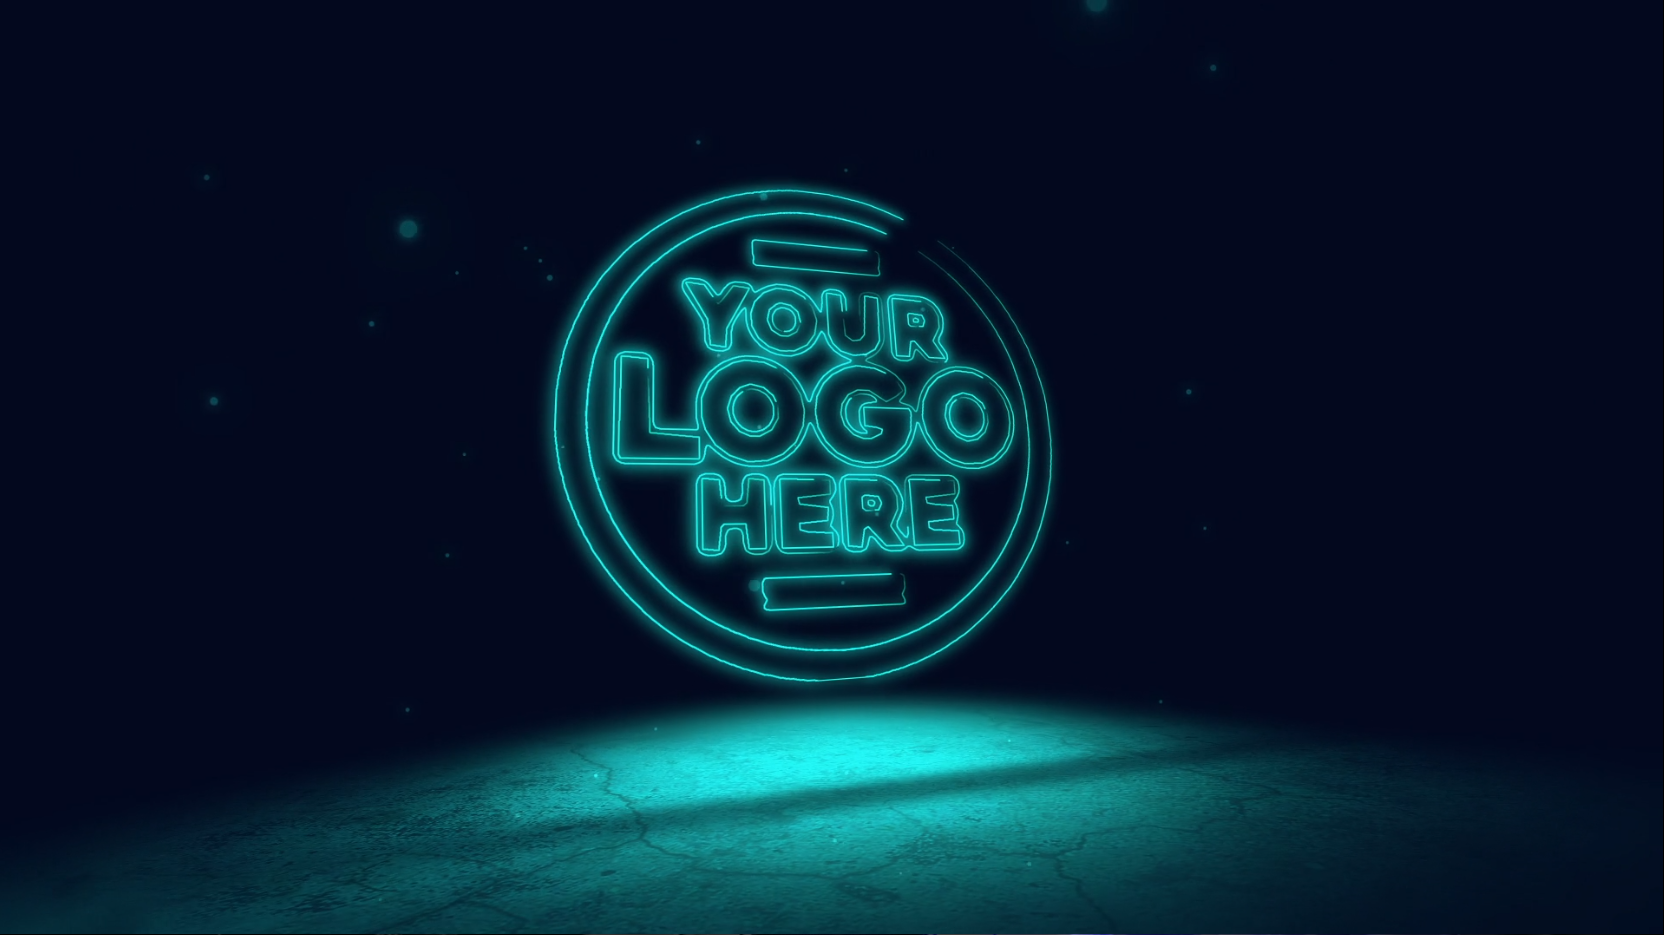 I will create this Neon video intro